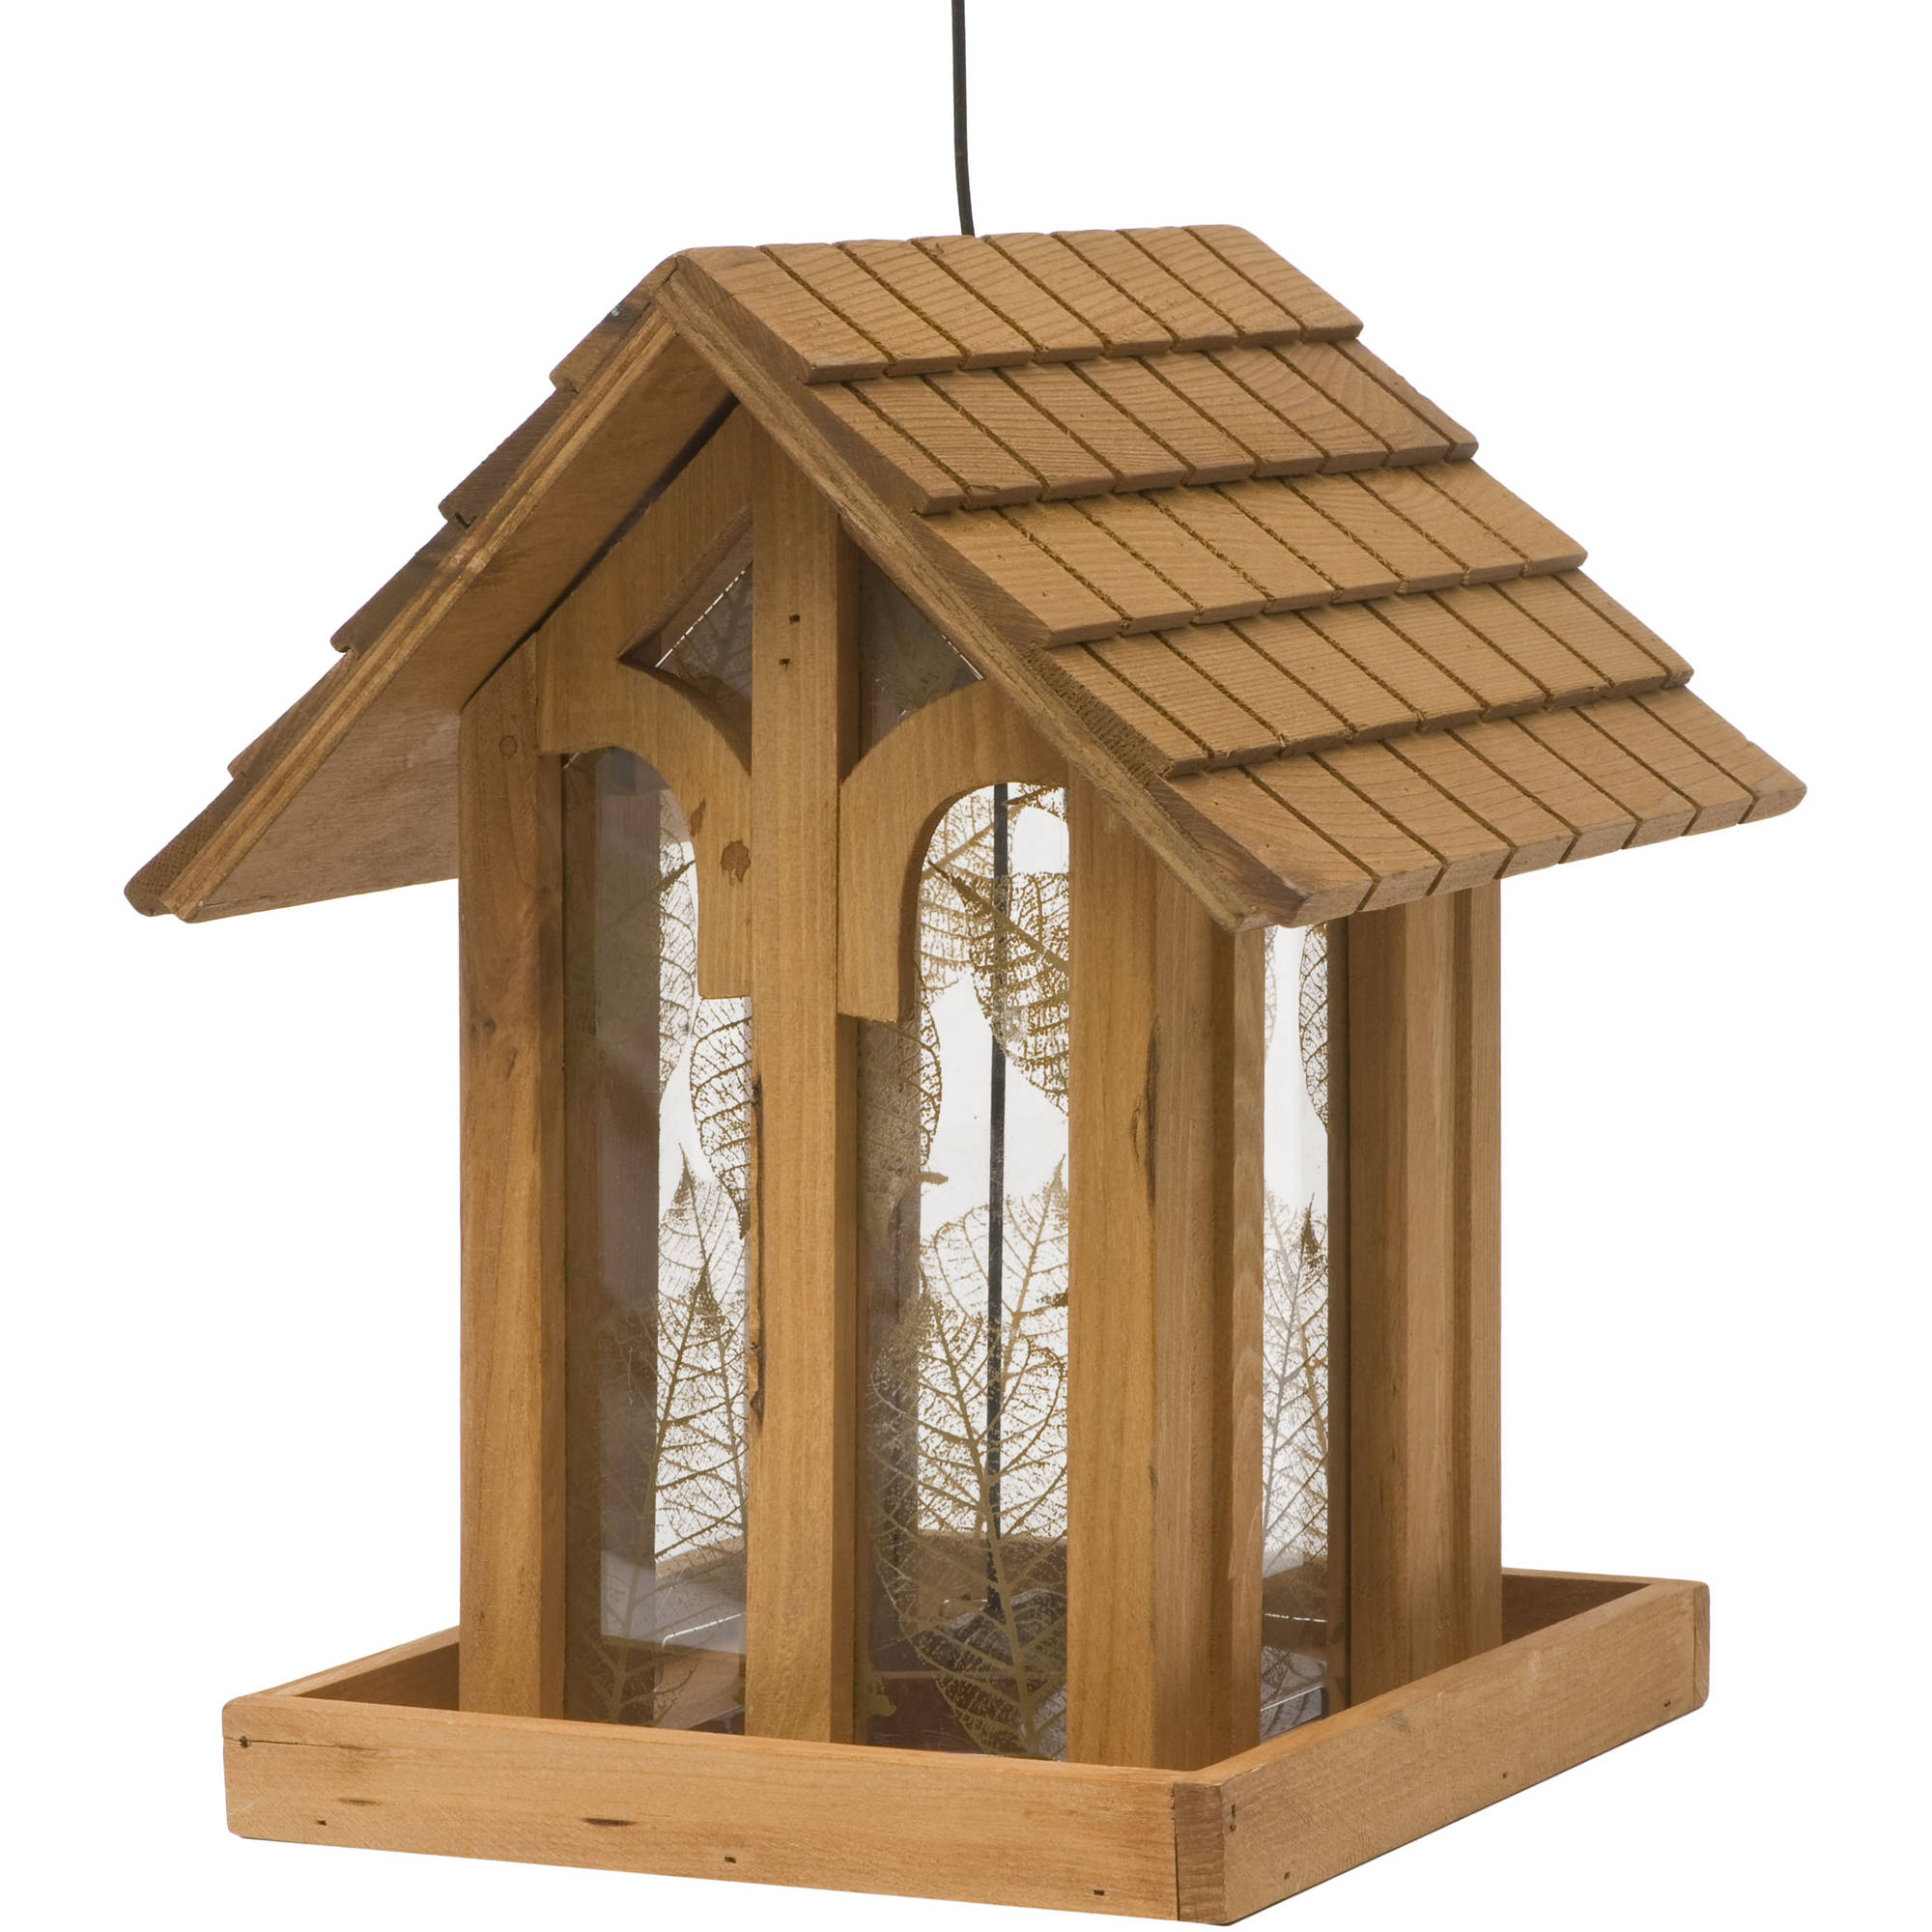 Birdscapes 50172 3.6 Lb. Capacity Fresh Designs® Mountain Chapel Bird Feeder